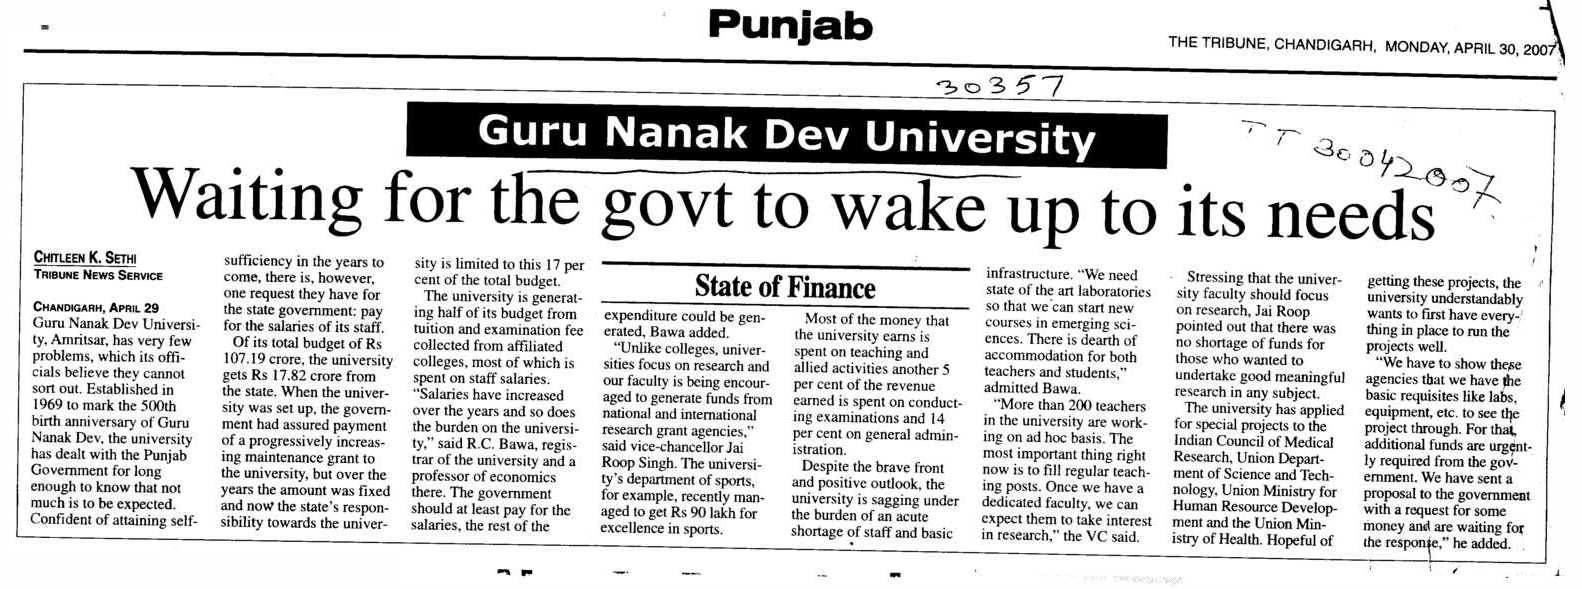 Waiting for the govt to wake up to its needs (Guru Nanak Dev University (GNDU))